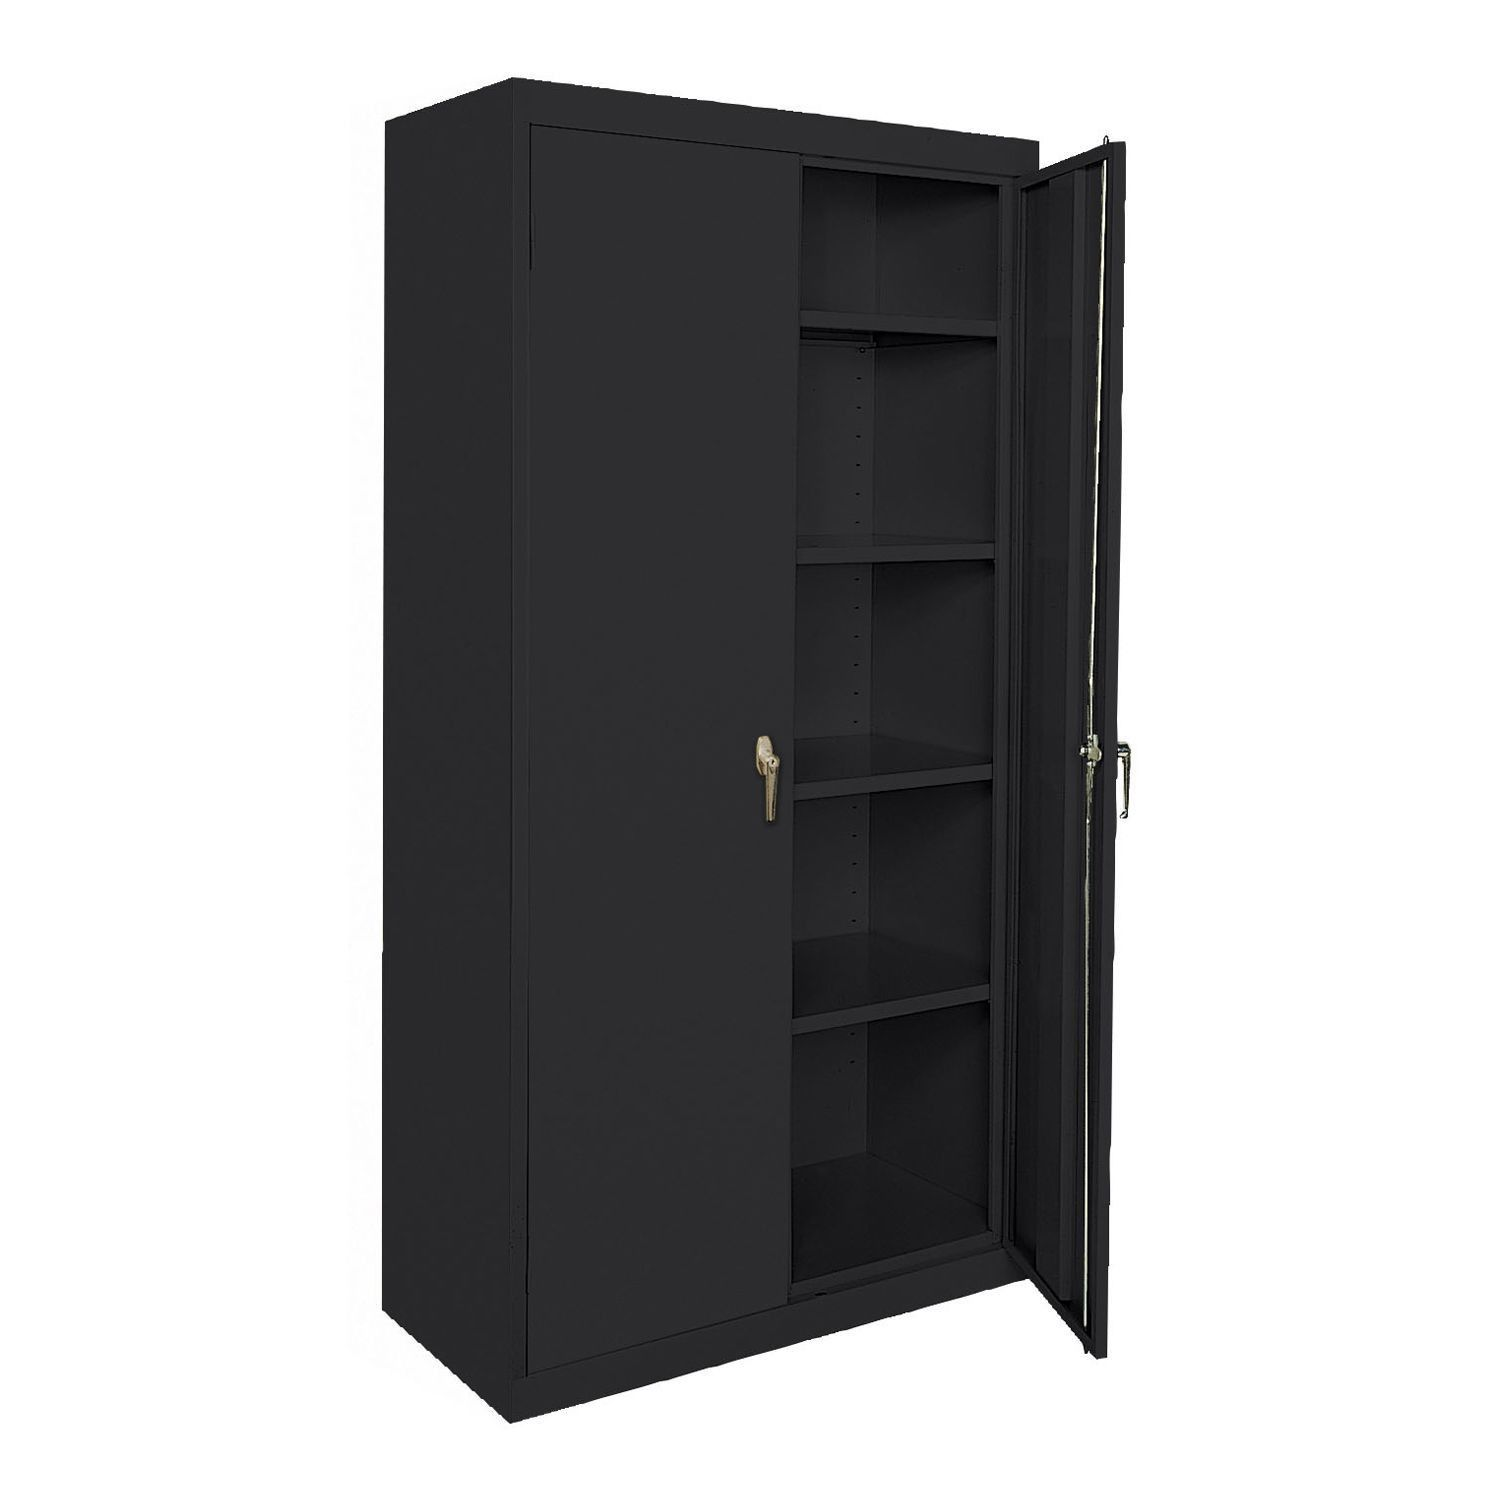 2019 Metal Lockable Storage Cabinets Small Kitchen Island Ideas With Seating Check Mo Locking Storage Cabinet Metal Storage Cabinets Lockable Storage Cabinet